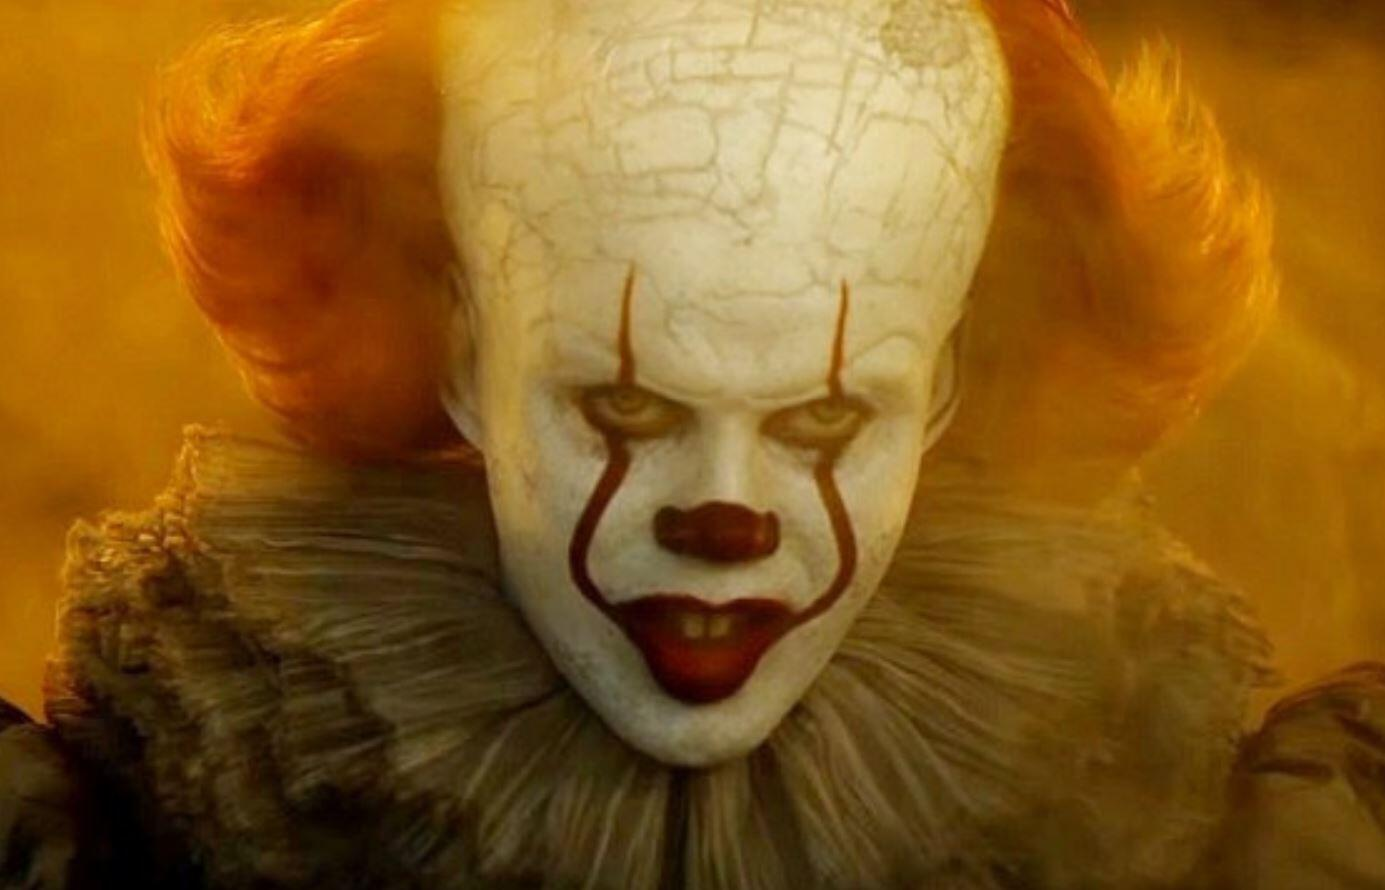 IT: Chapter 2 Pennywise